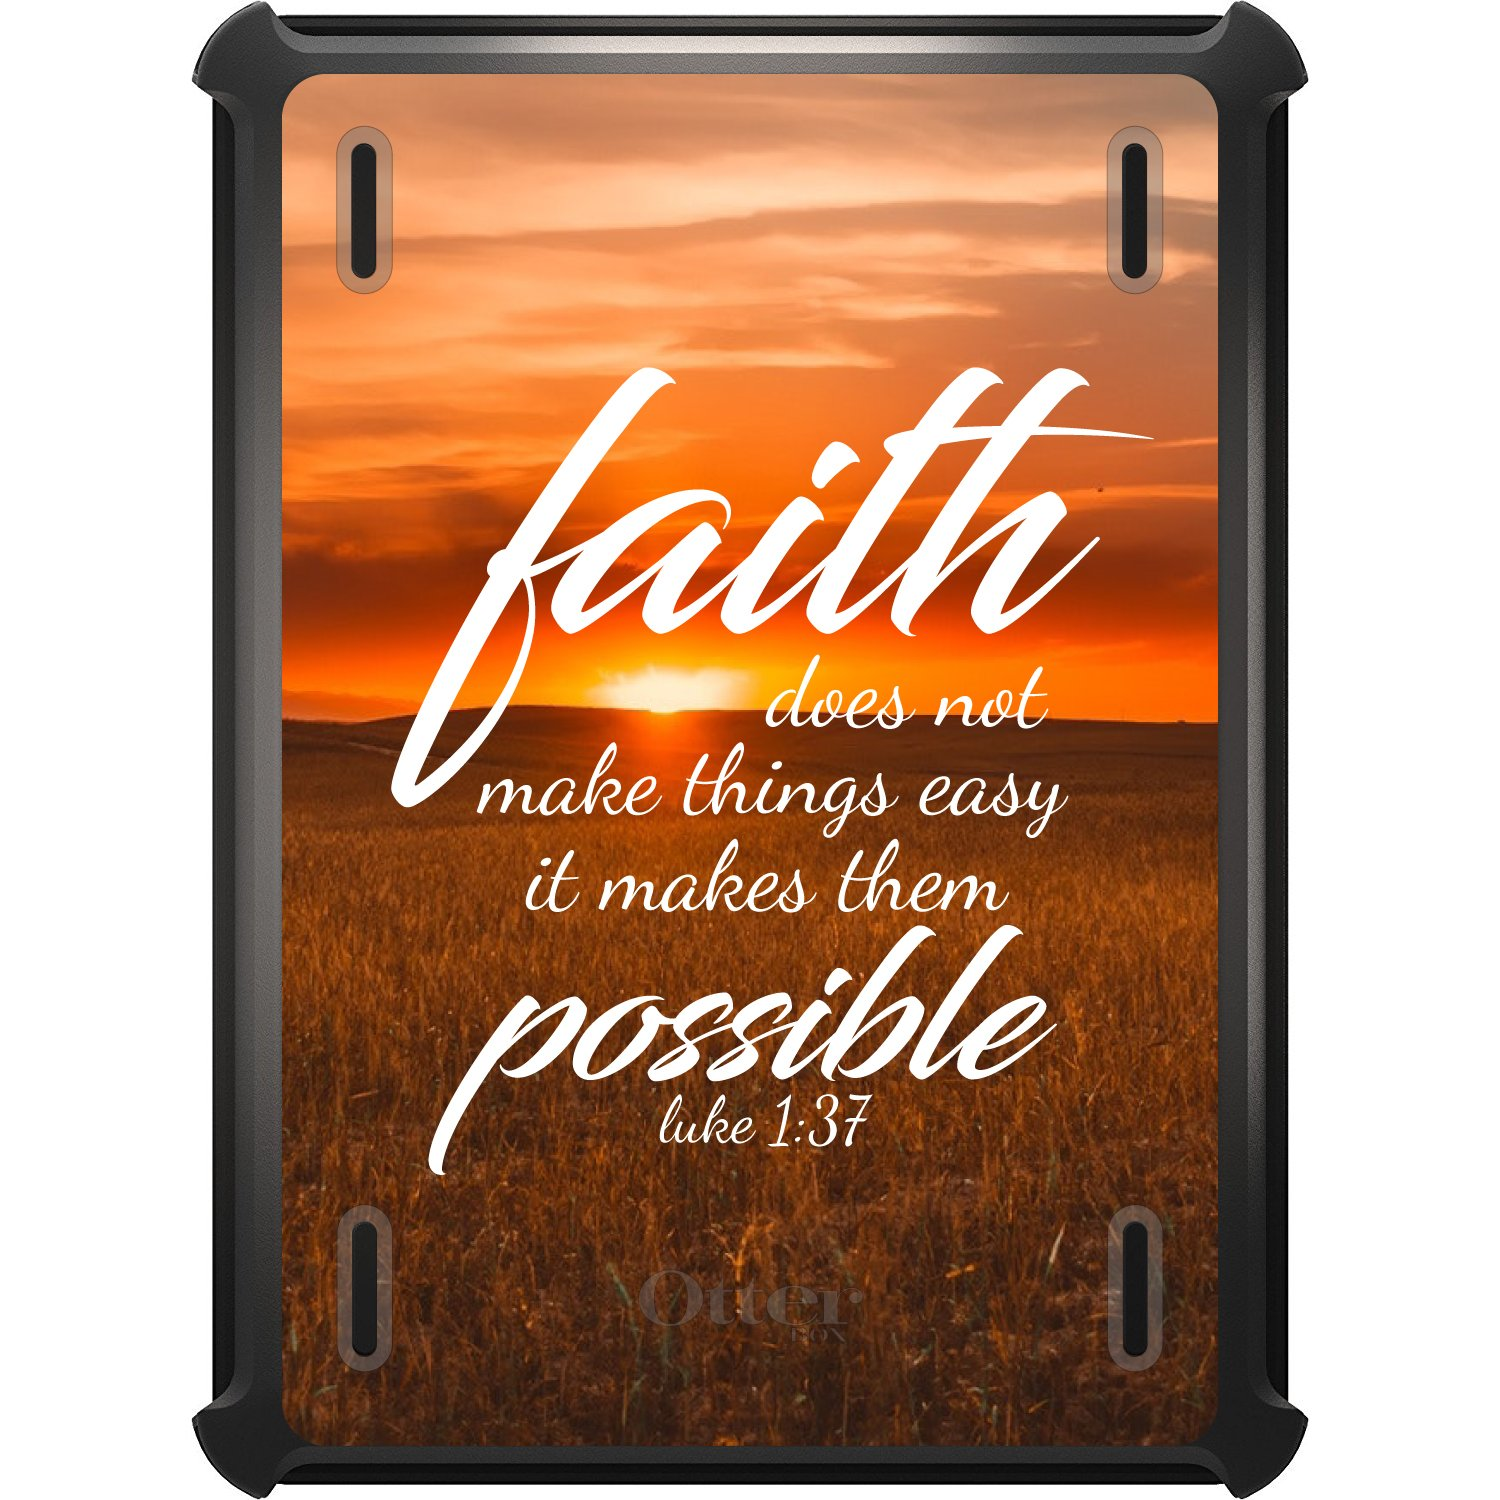 DistinctInk Case Compatible with iPad Pro 12.9'' (3rd Gen - 2018) - Custom Black OtterBox Defender - Works with Apple Pencil - Luke 1:37 - Faith Does Not Make Things Easy, It Makes Them Possible